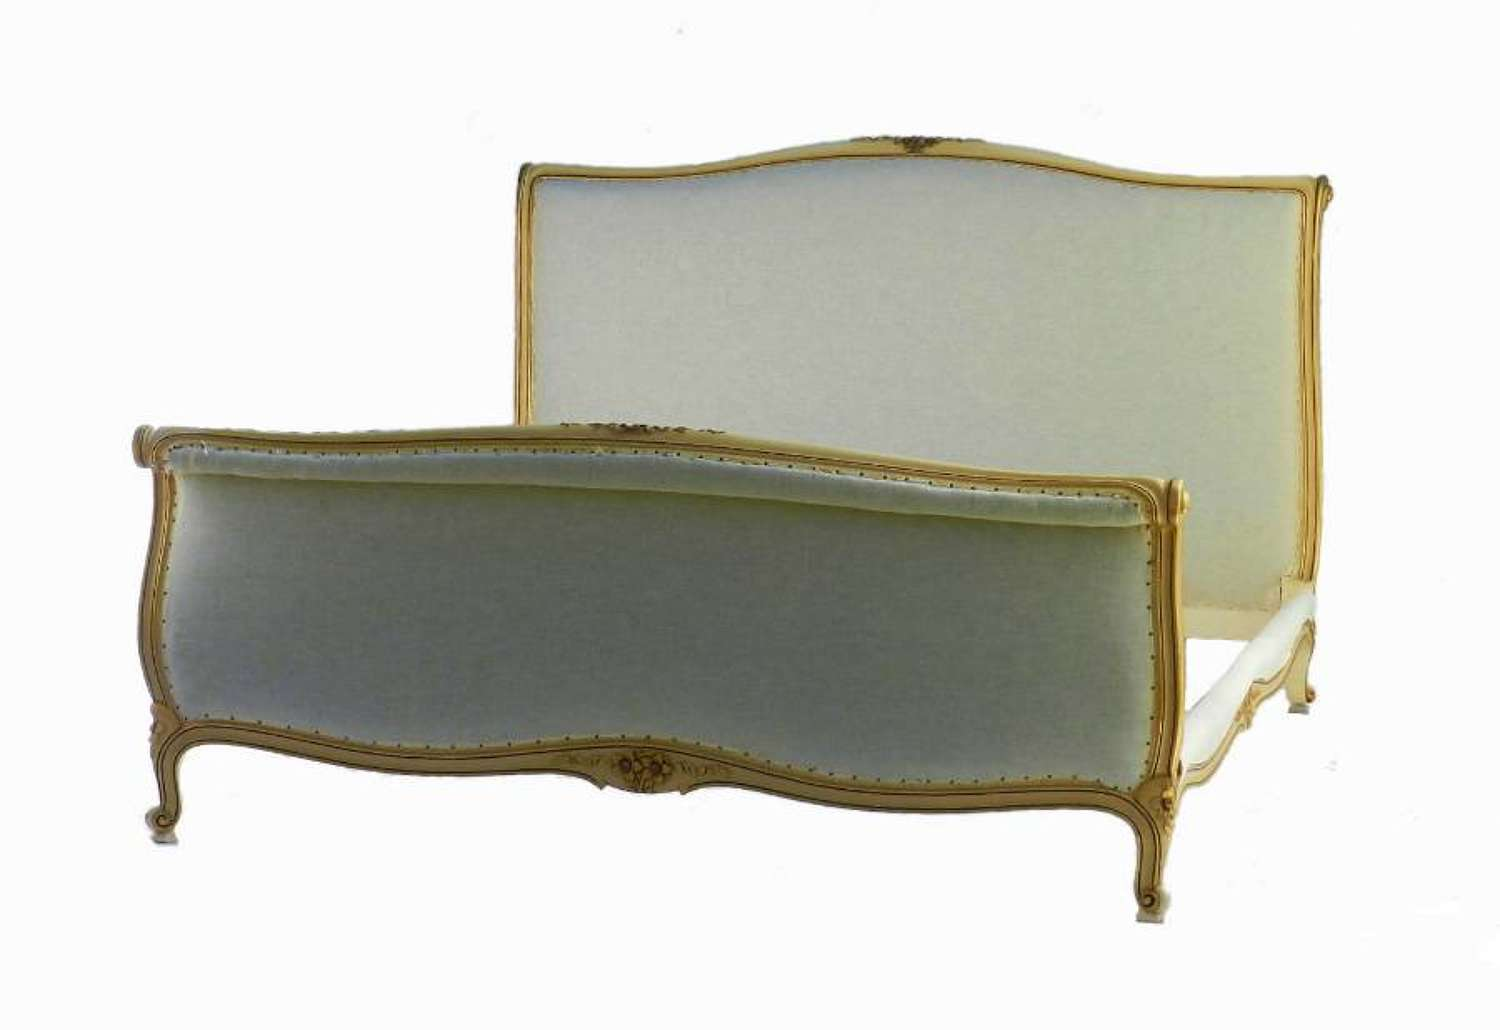 French Bed US Queen UK King Size Ready for Top Covers Scroll, circa 1920